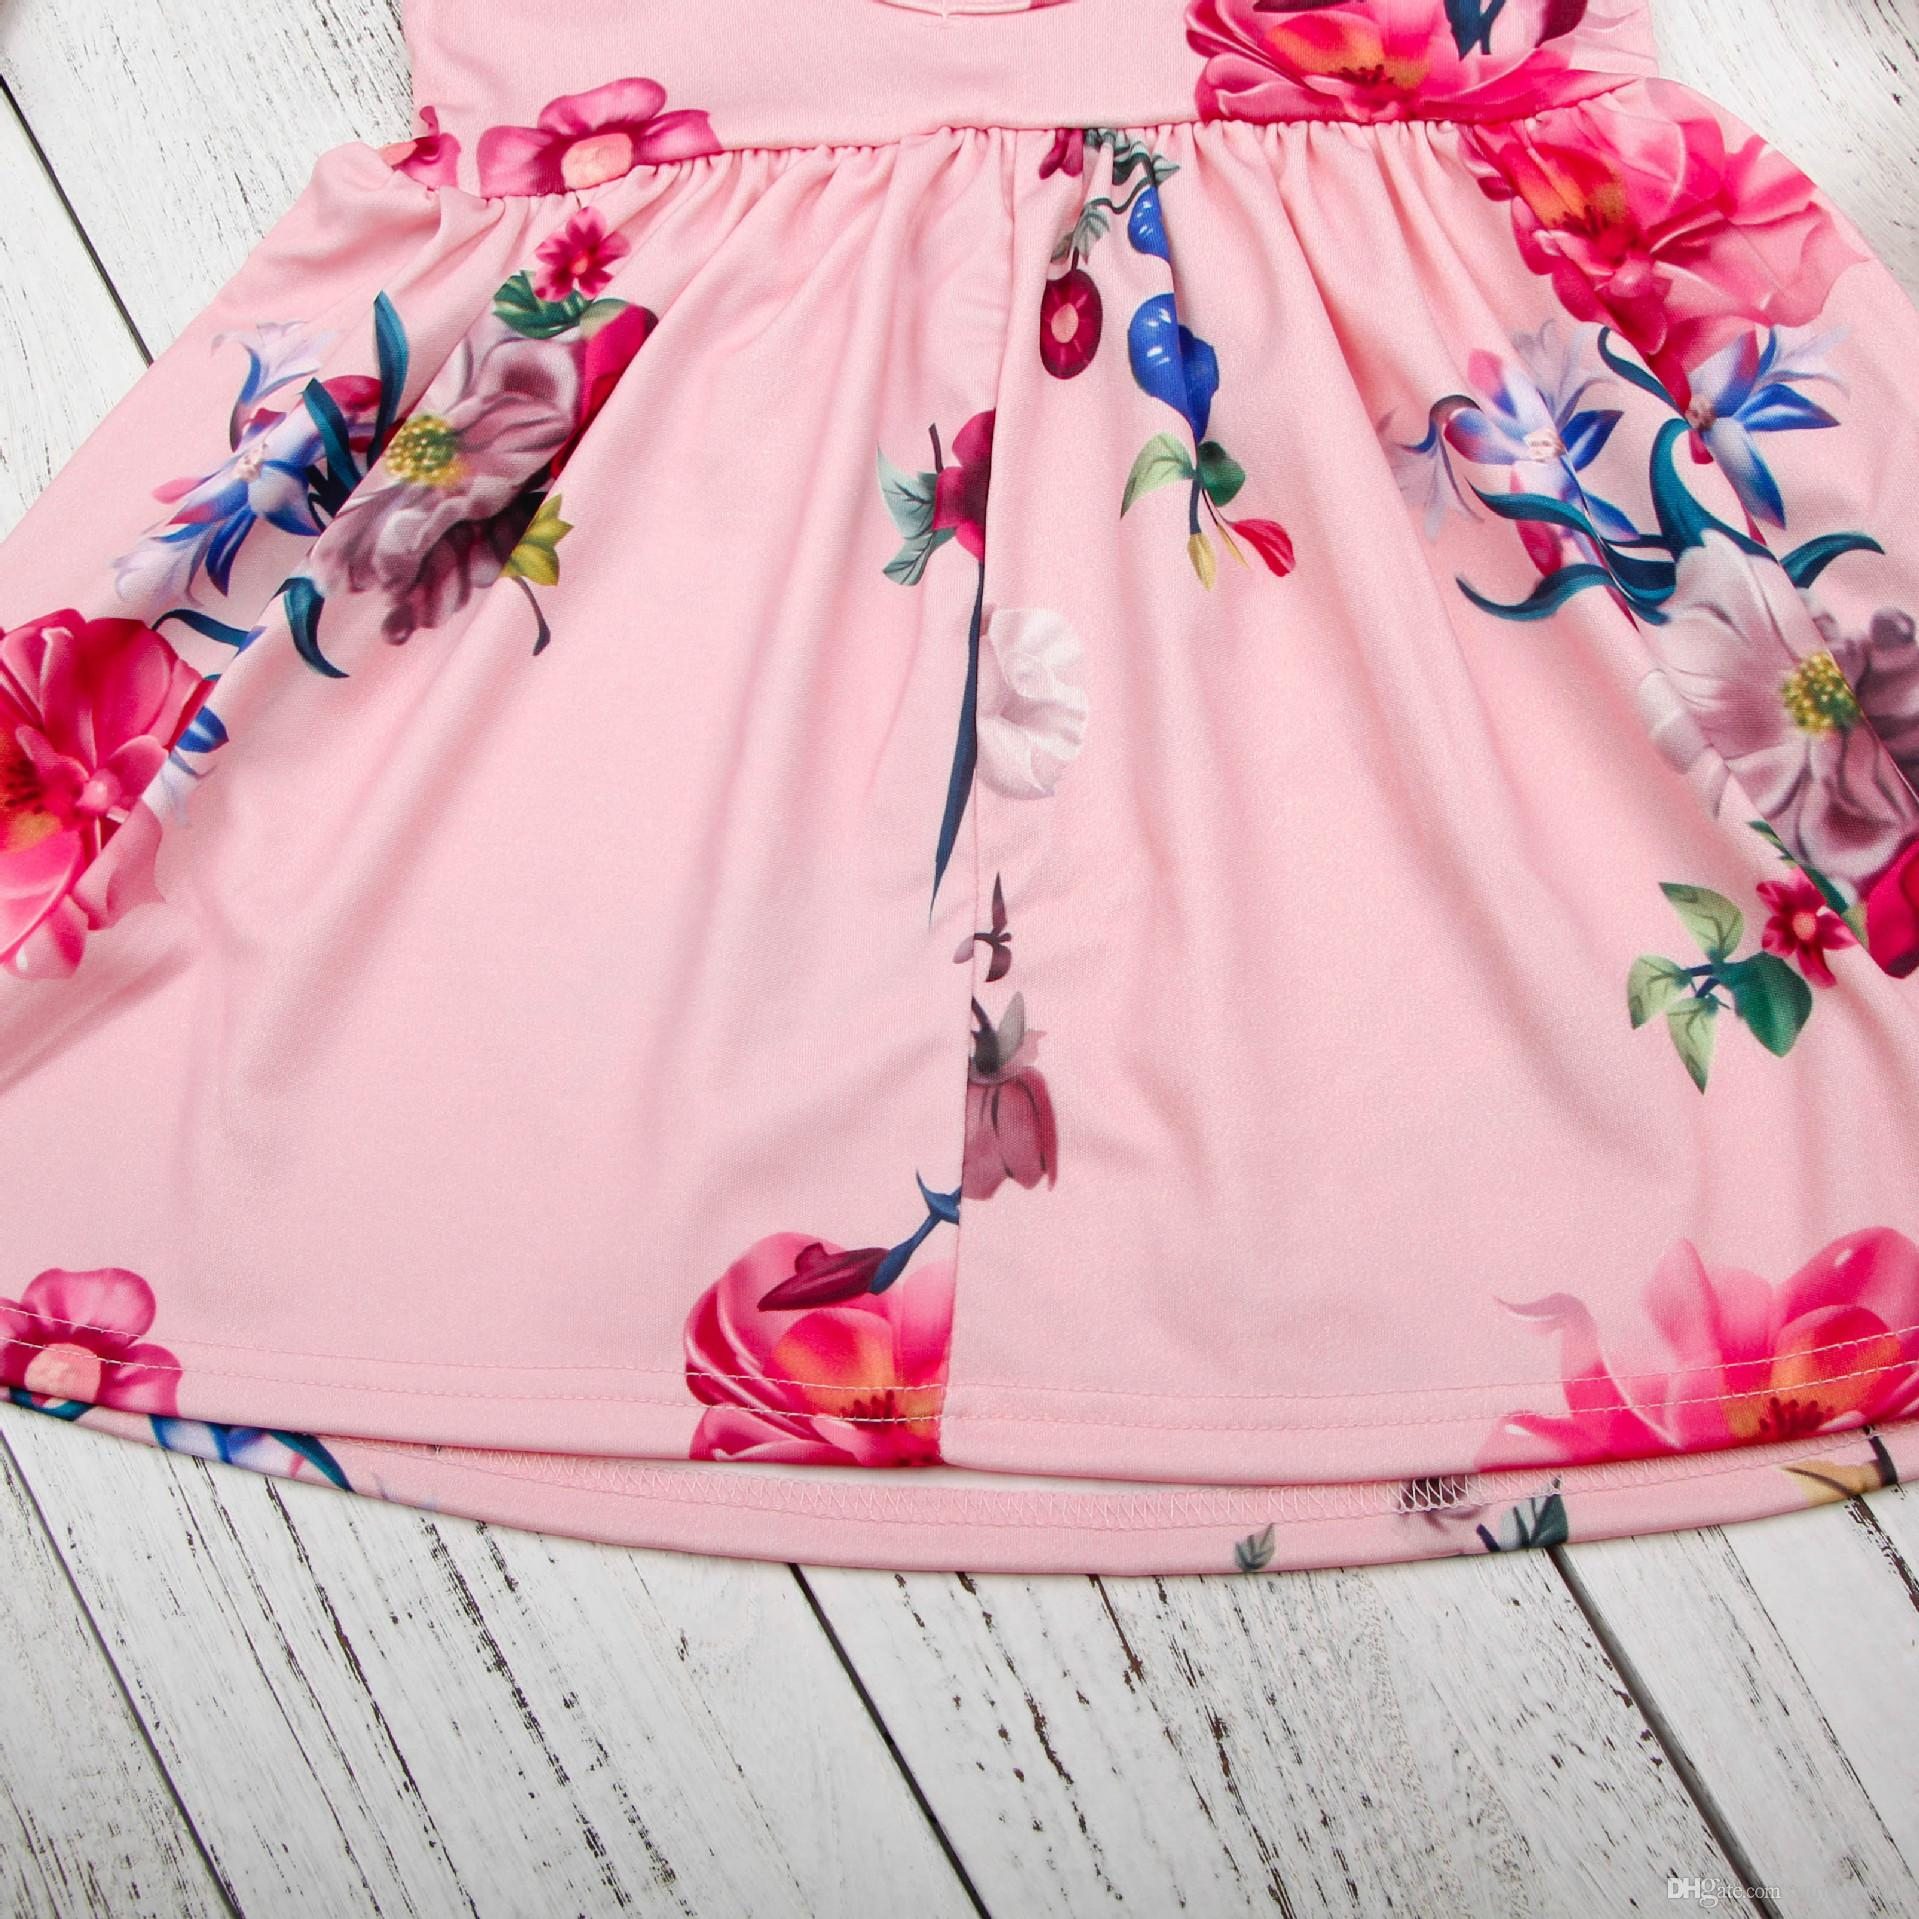 2018 Ins Children Party Dress Girls Floral Short Sleeve Pleated ...